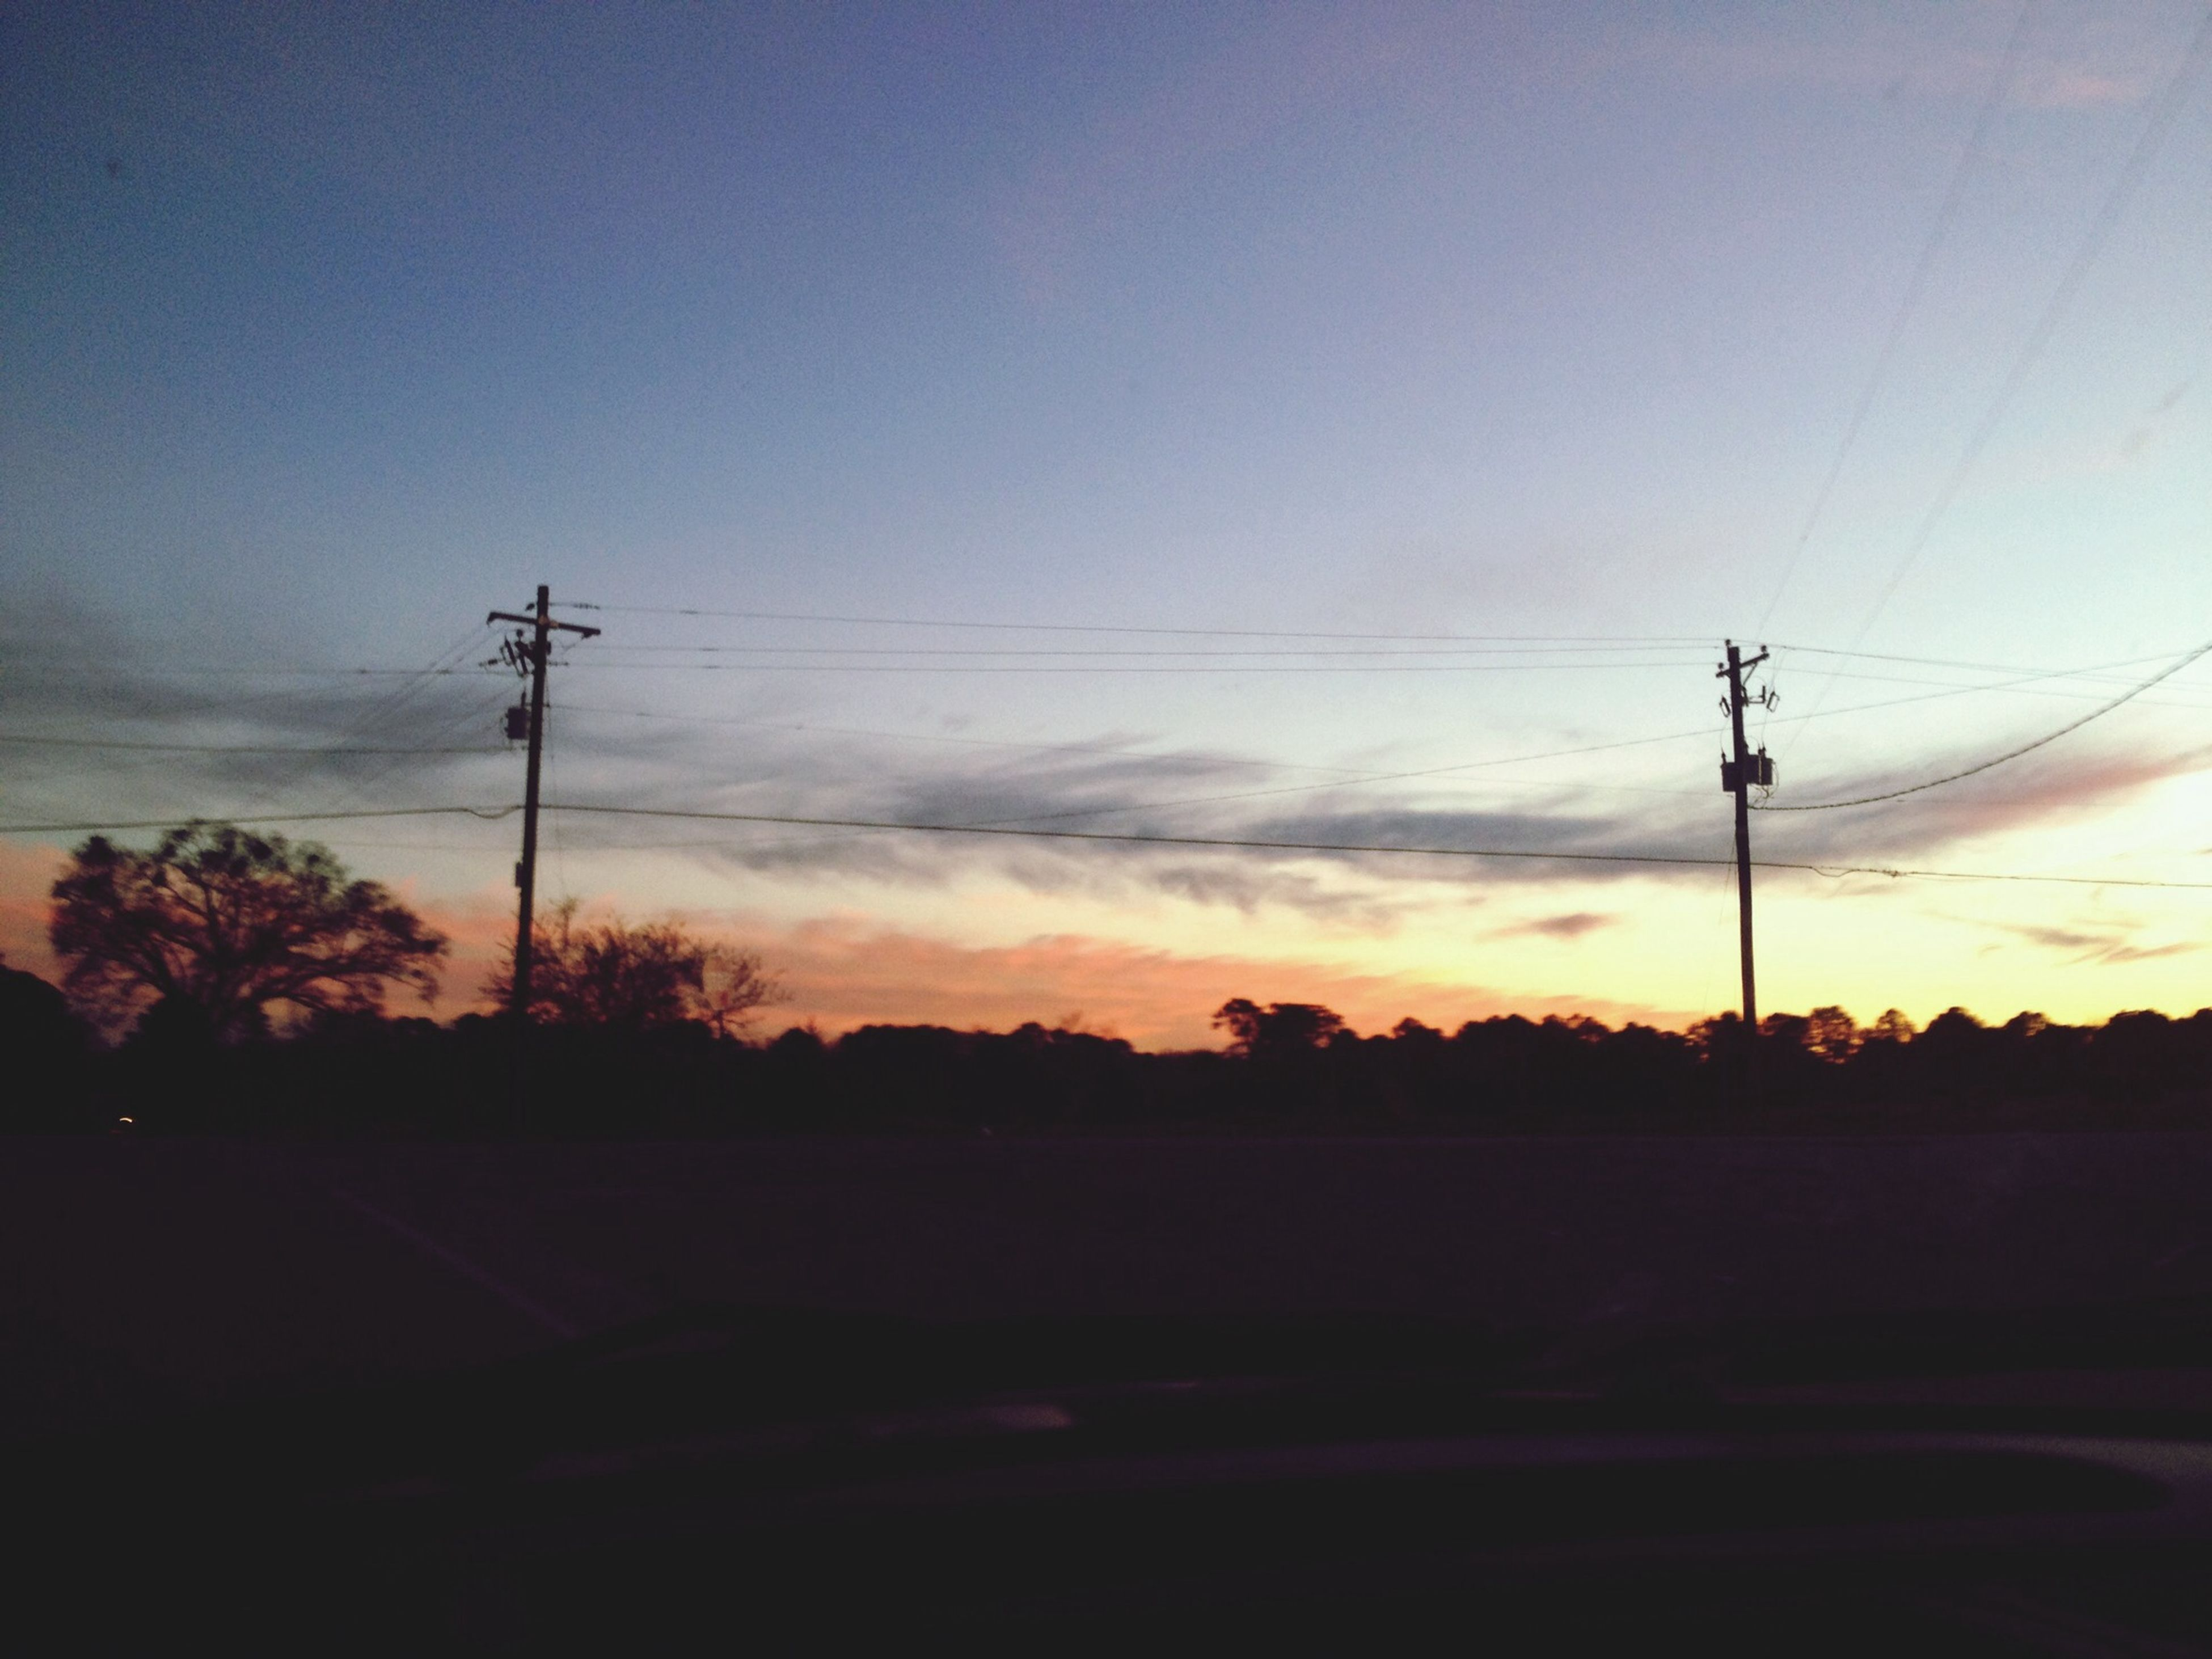 power line, electricity pylon, electricity, power supply, silhouette, sunset, cable, fuel and power generation, connection, technology, sky, tranquility, tree, power cable, tranquil scene, scenics, nature, beauty in nature, landscape, dusk